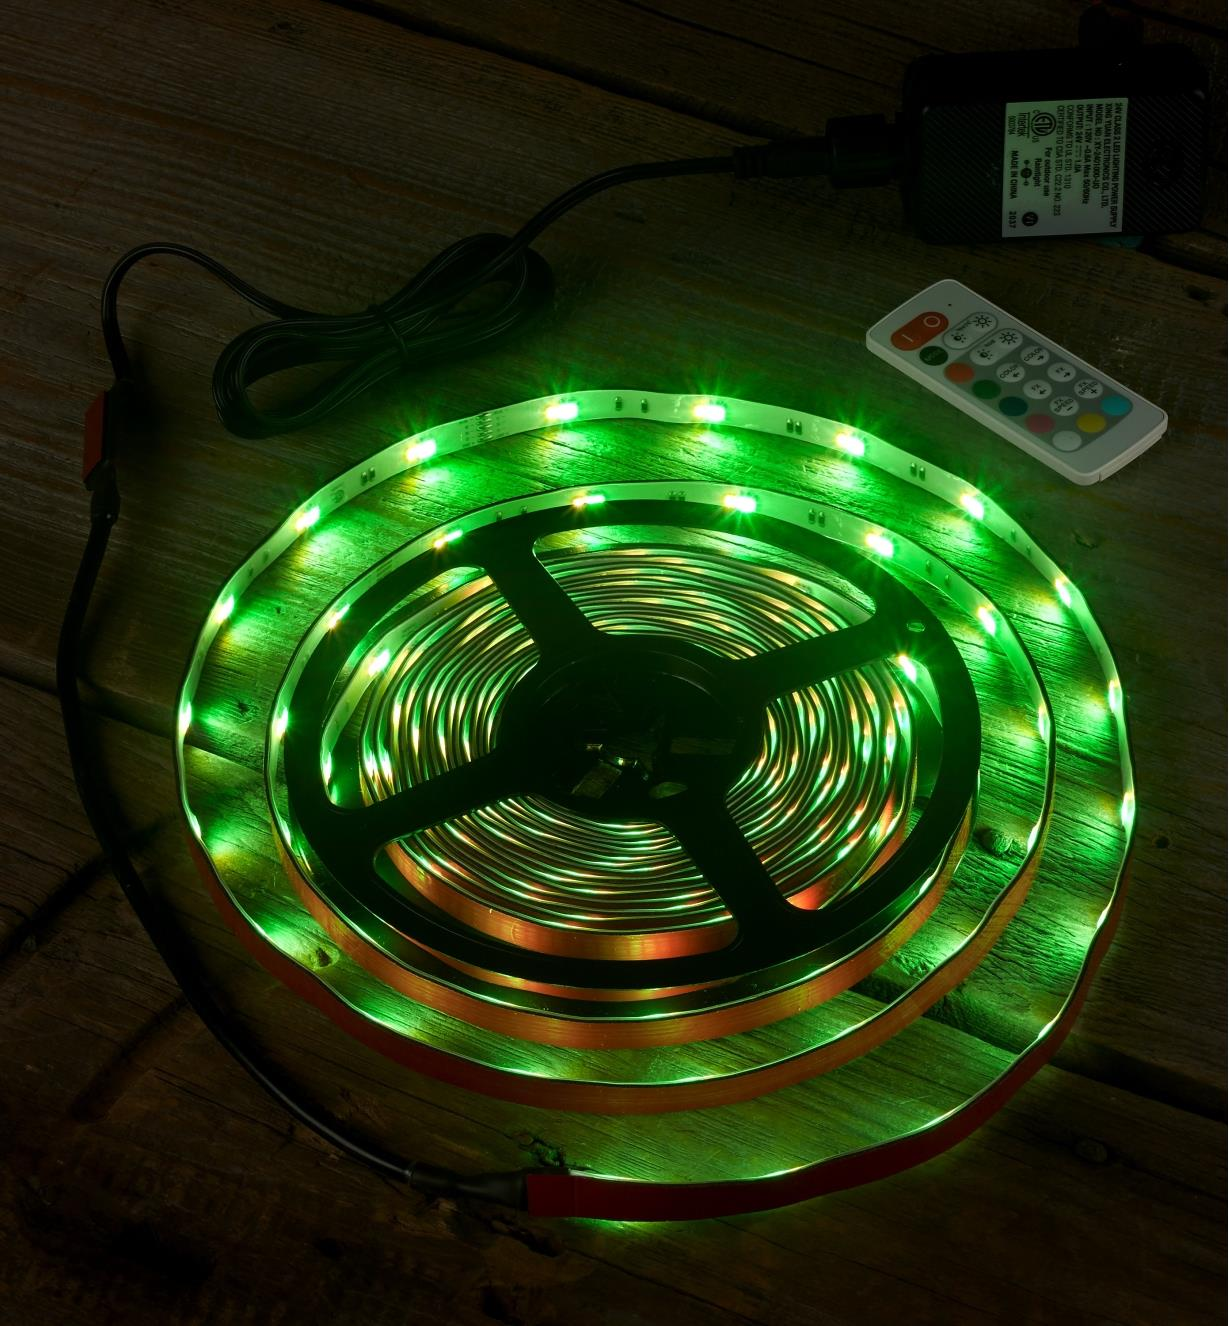 An LED color-controlled tape light kit set to a green hue to test it before installation